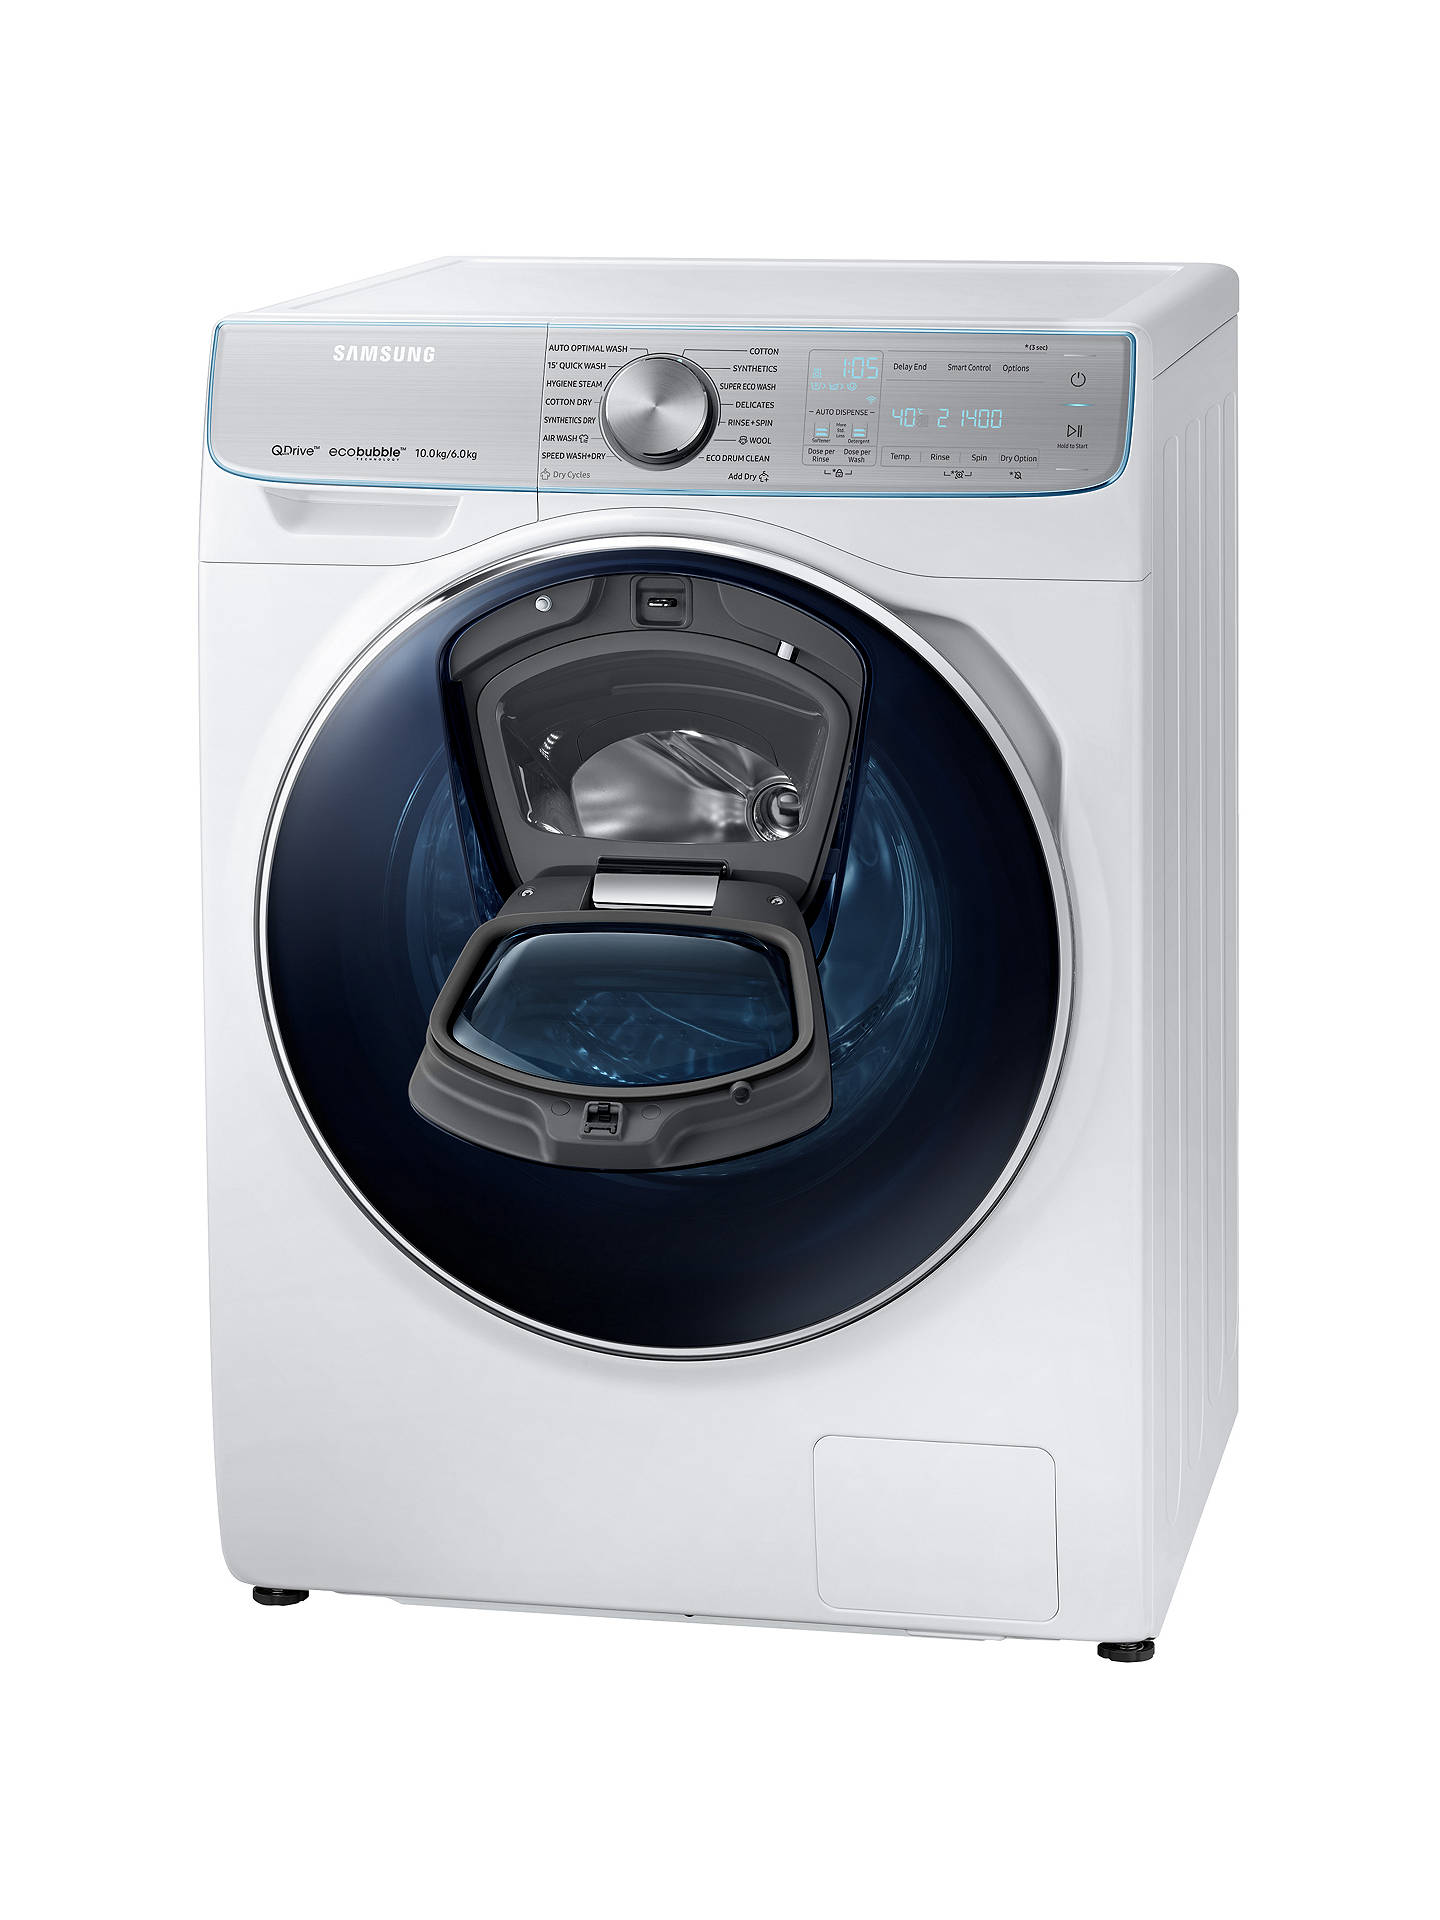 Samsung QuickDrive WD10N84GNOA/EU Freestanding Washer Dryer with AddWash,  10kg Wash/6kg Dry Load, A Energy Rating, 1400rpm Spin, White